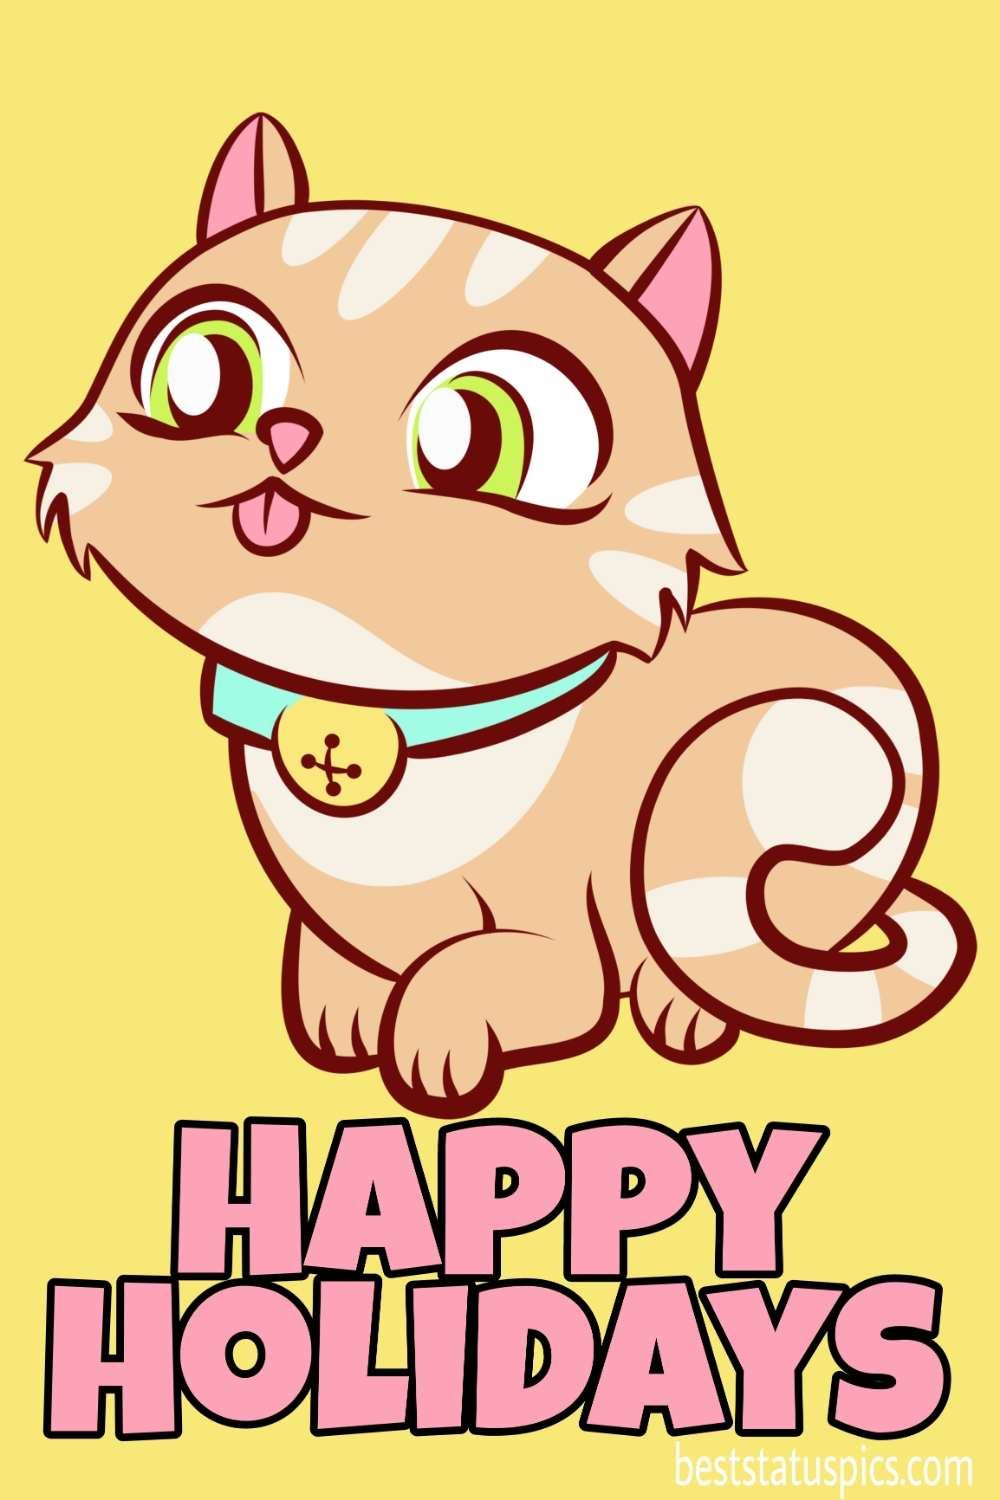 Happy holidays 2022 wishes images with cute cat for love and girlfriend